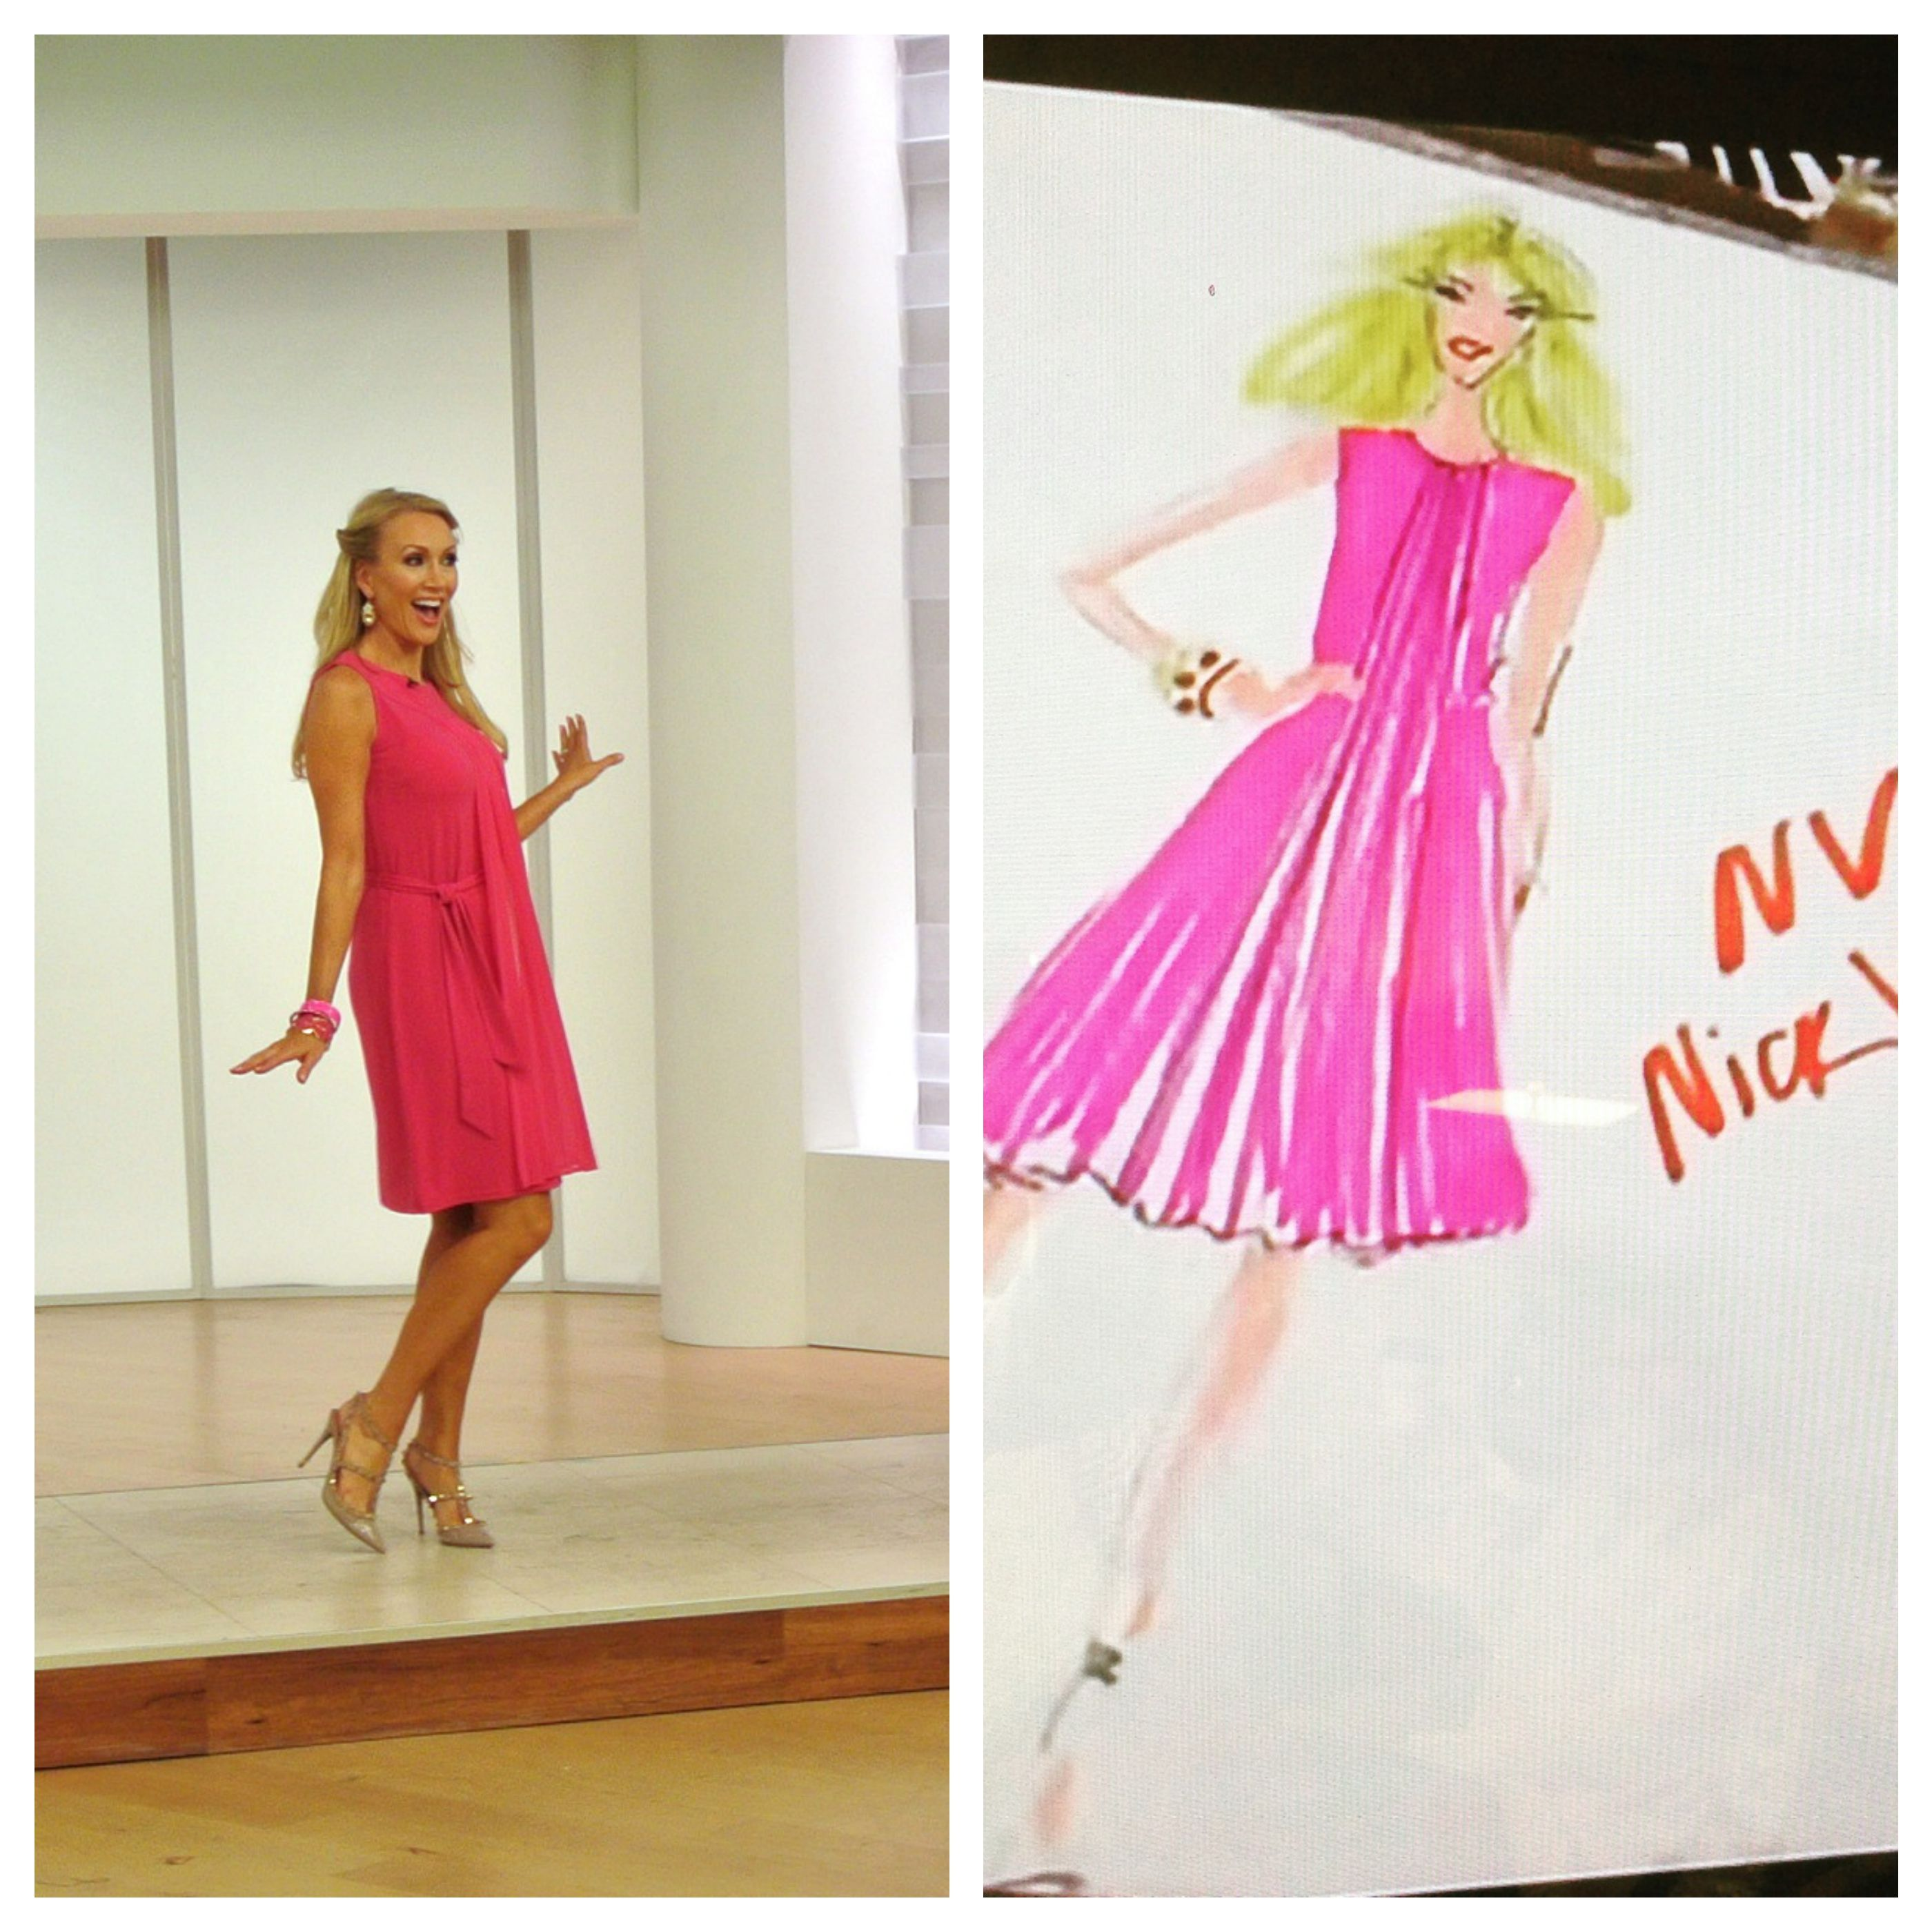 EVINE Live TV Shopping Network host Wendi Russo wearing NV by NICK